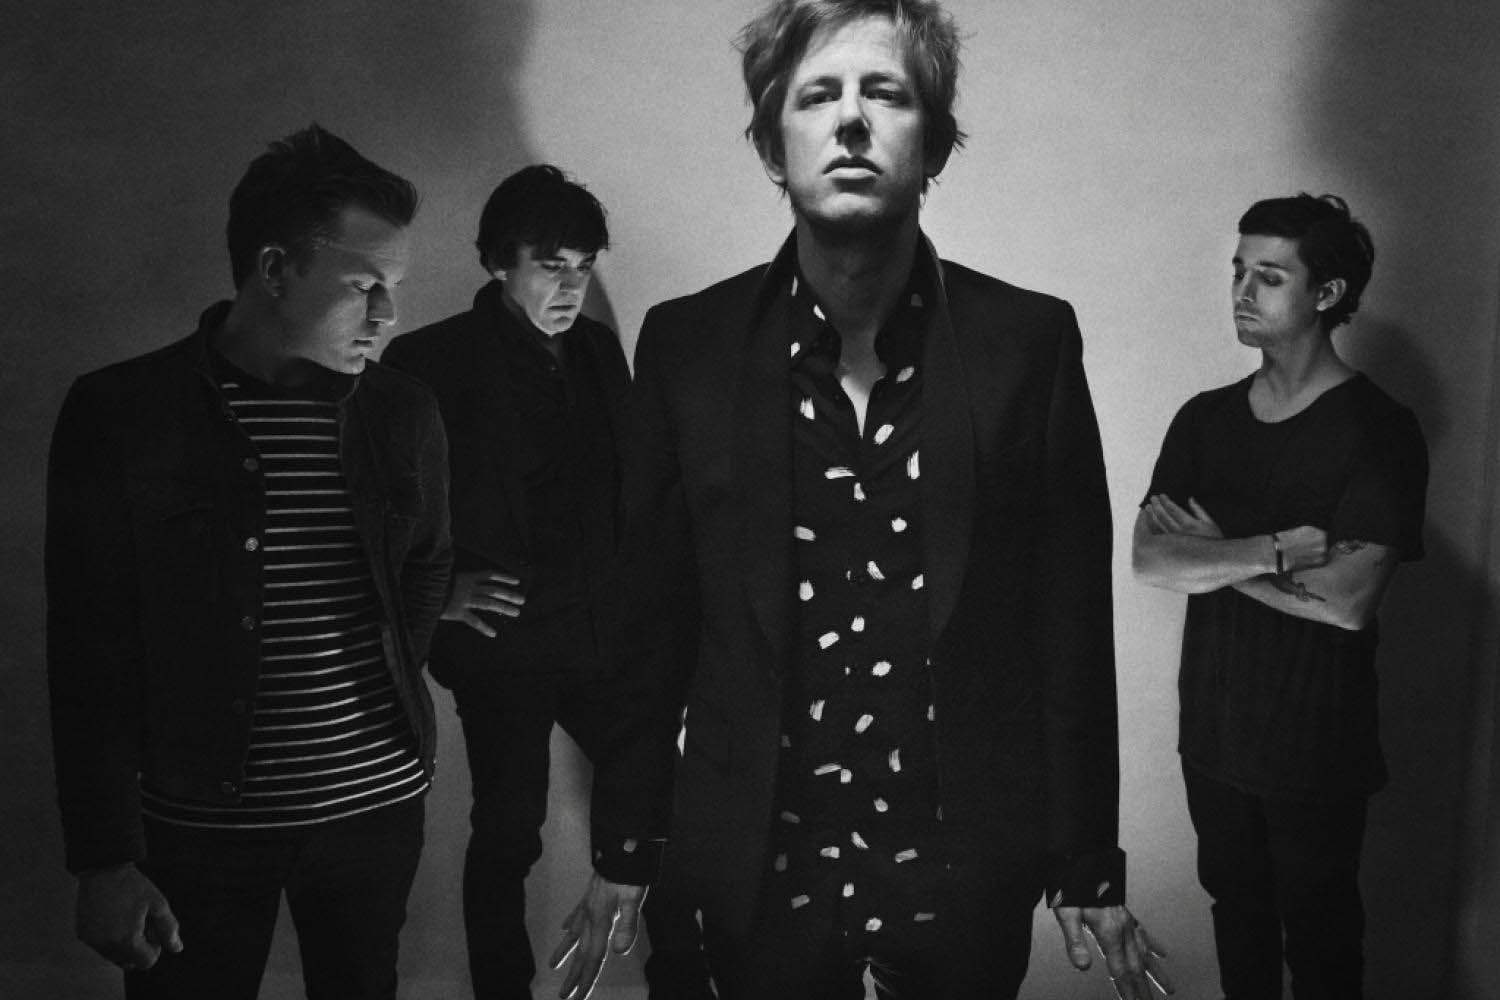 Spoon announce new best of compilation, with new track 'No Bullets Spent'